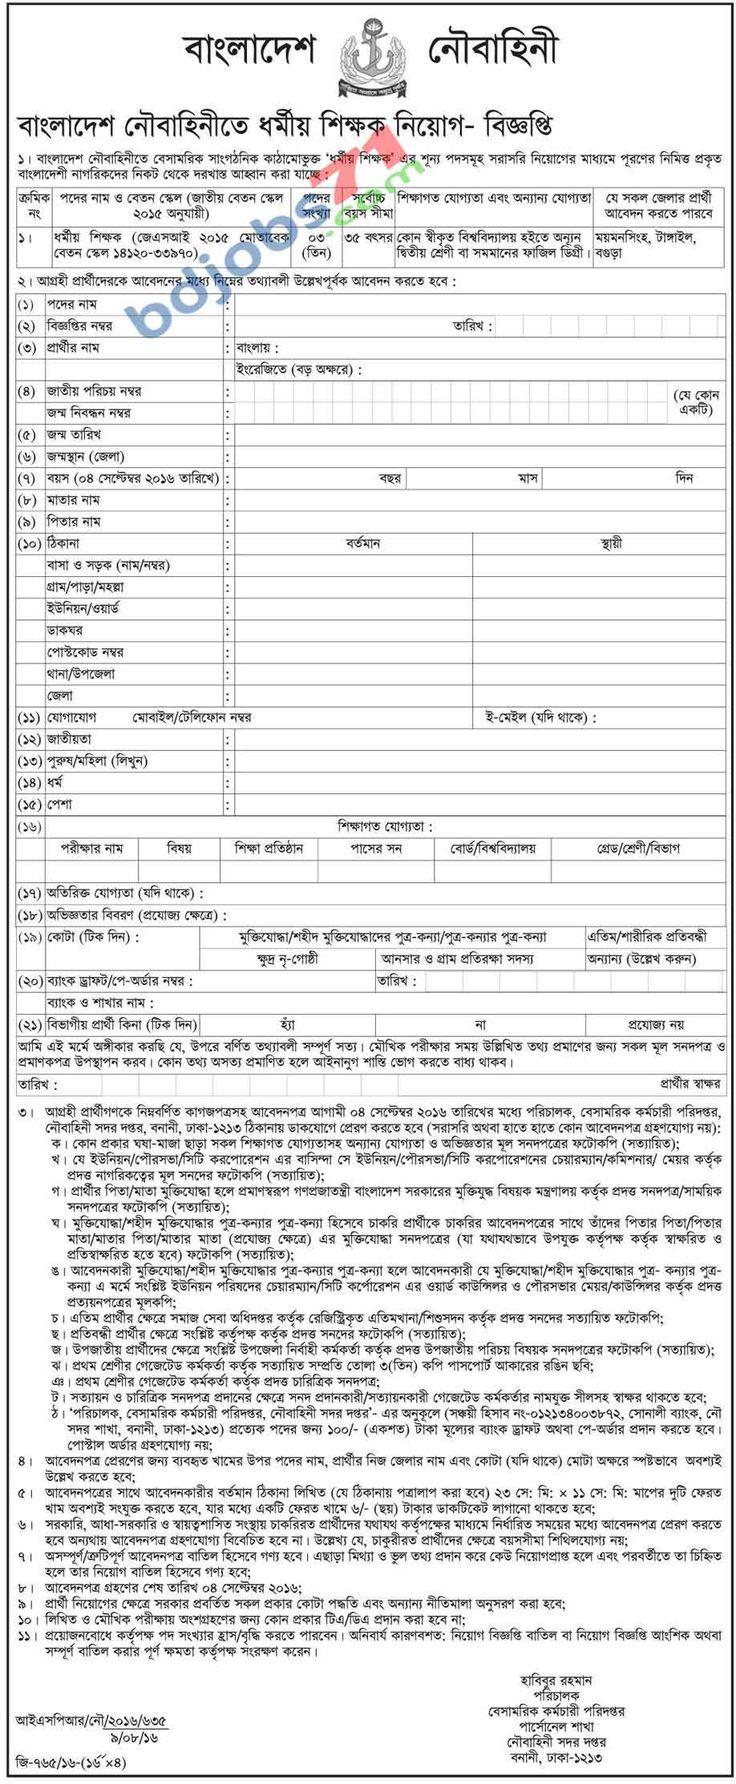 best images about bdjobs s representative navy religious teacher job circular 2016